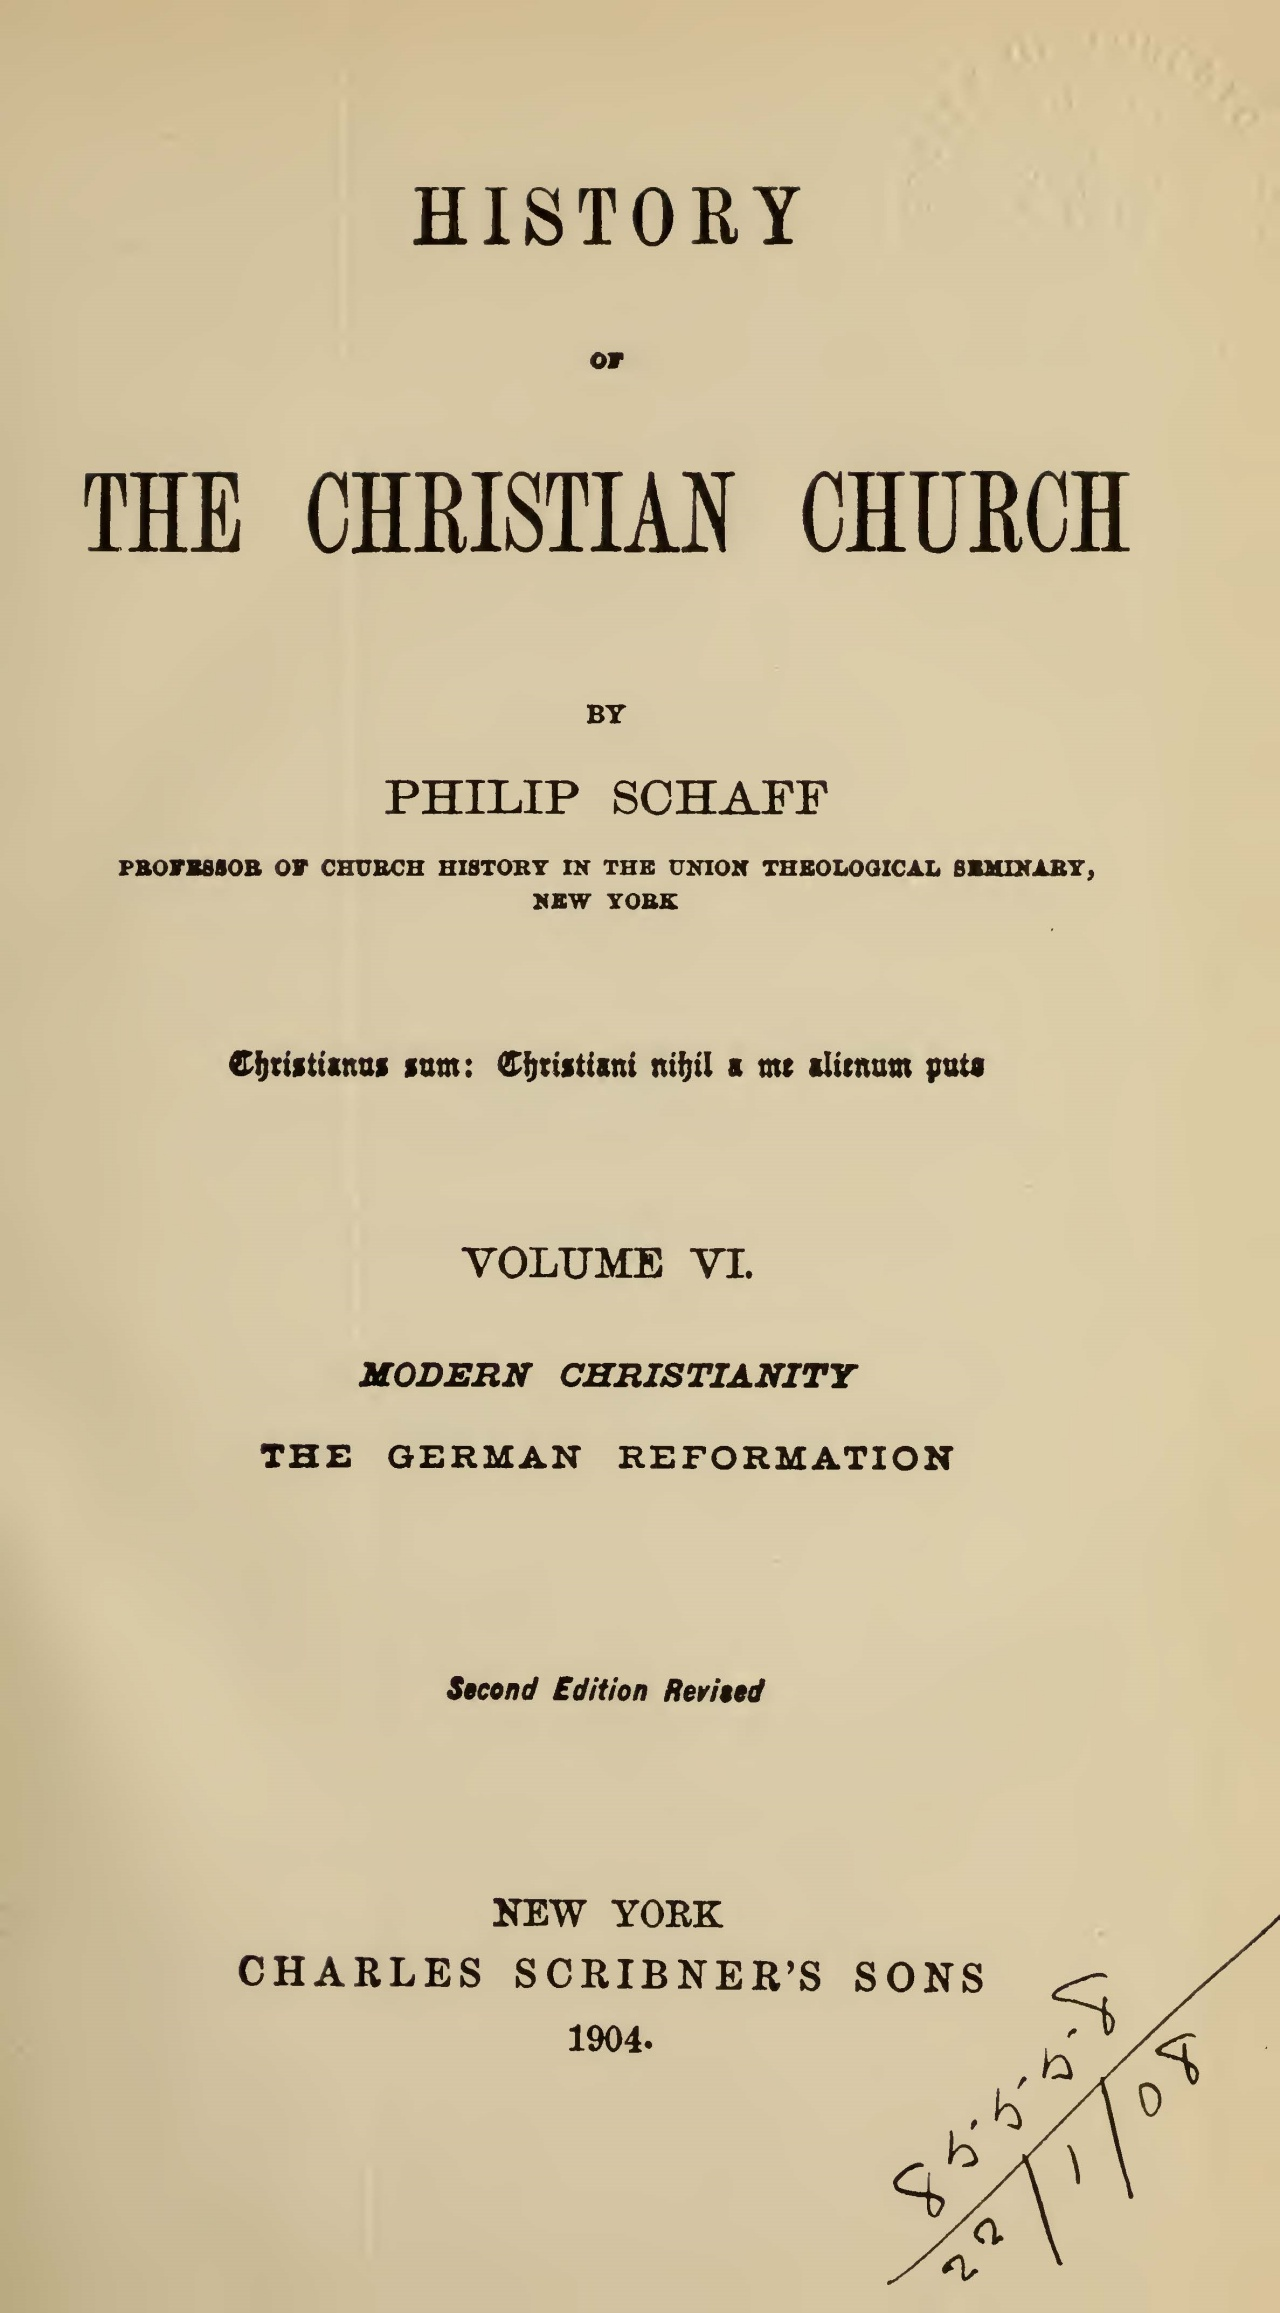 Schaff, Philip, History of the Christian Church, Vol. 6 Title Page.jpg